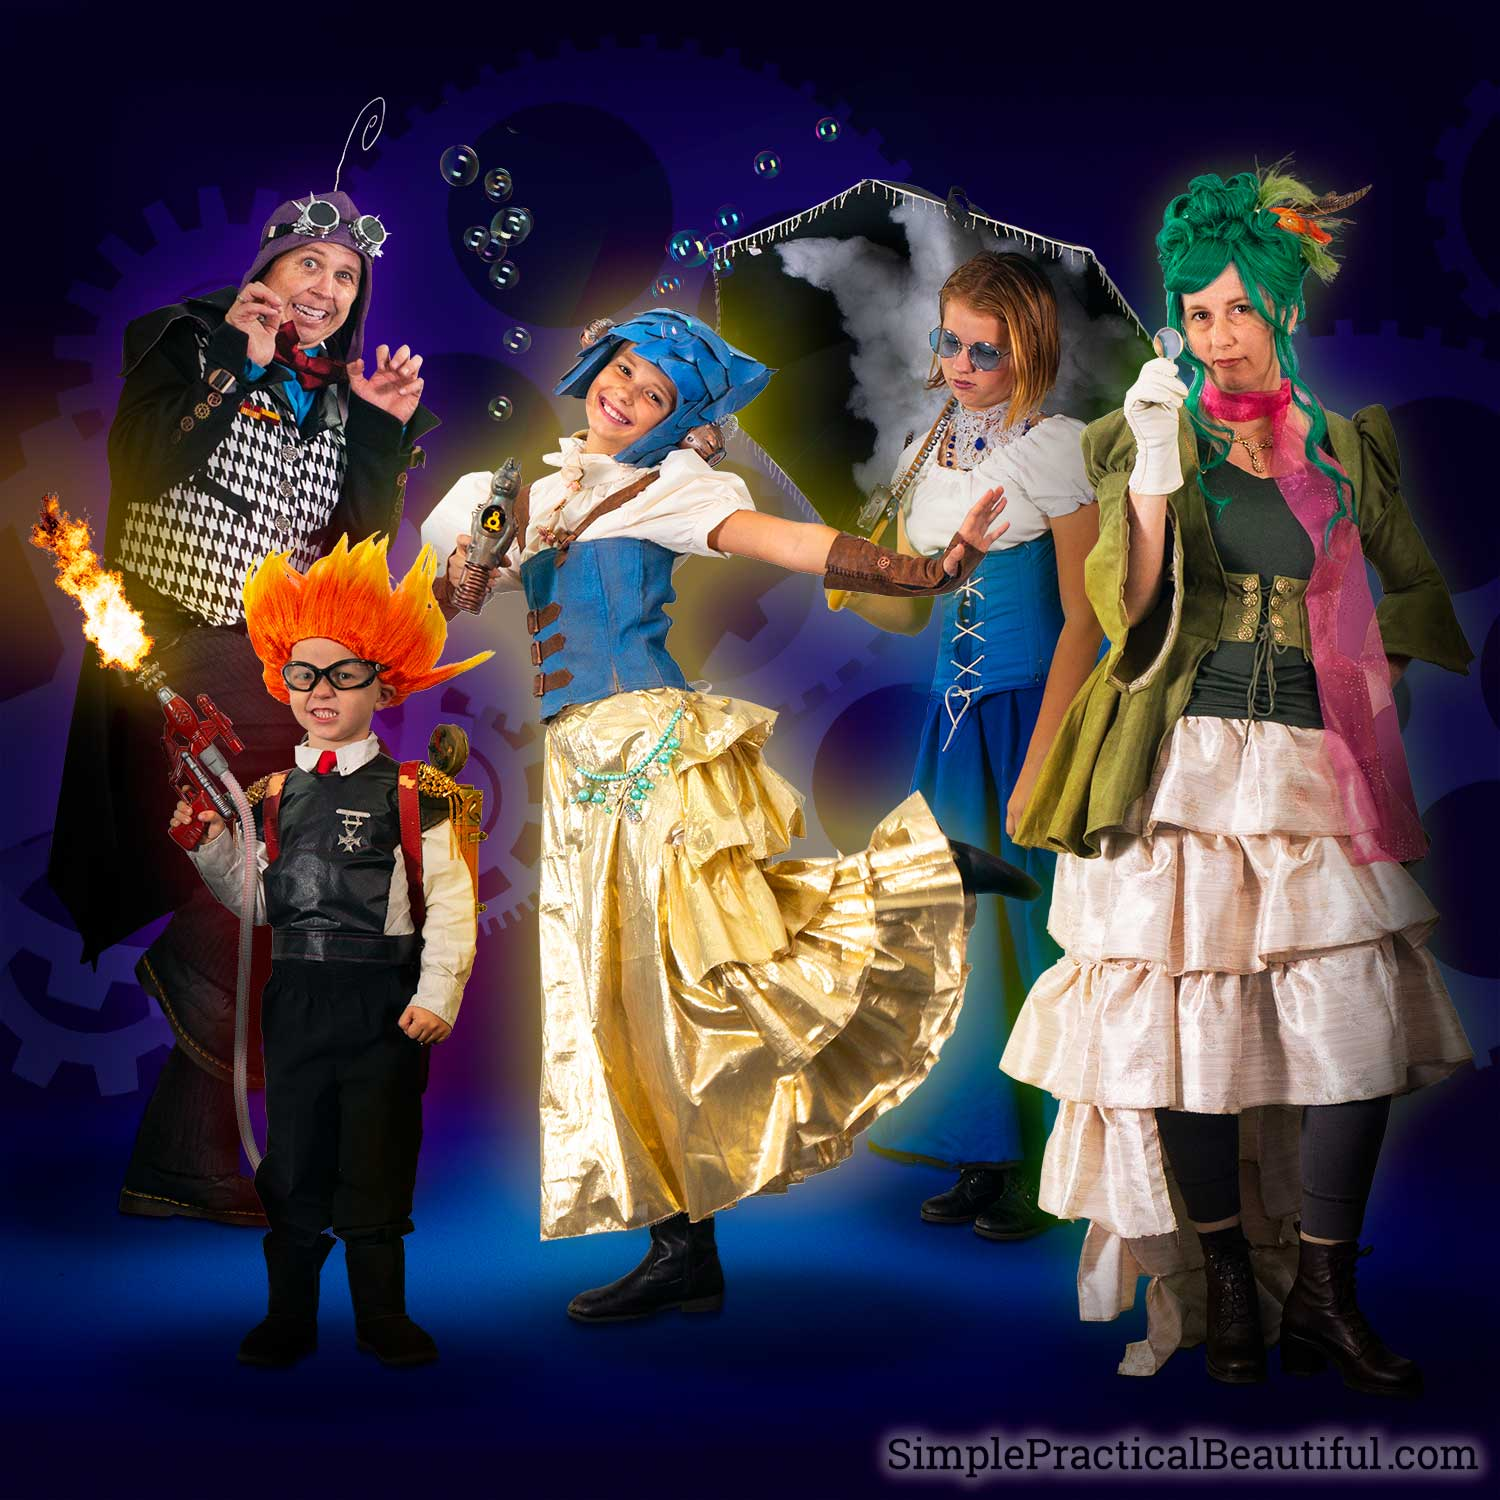 Inside Out family costume with steampunk style emotions Joy, Sadness, Fear, Anger, and Disgust